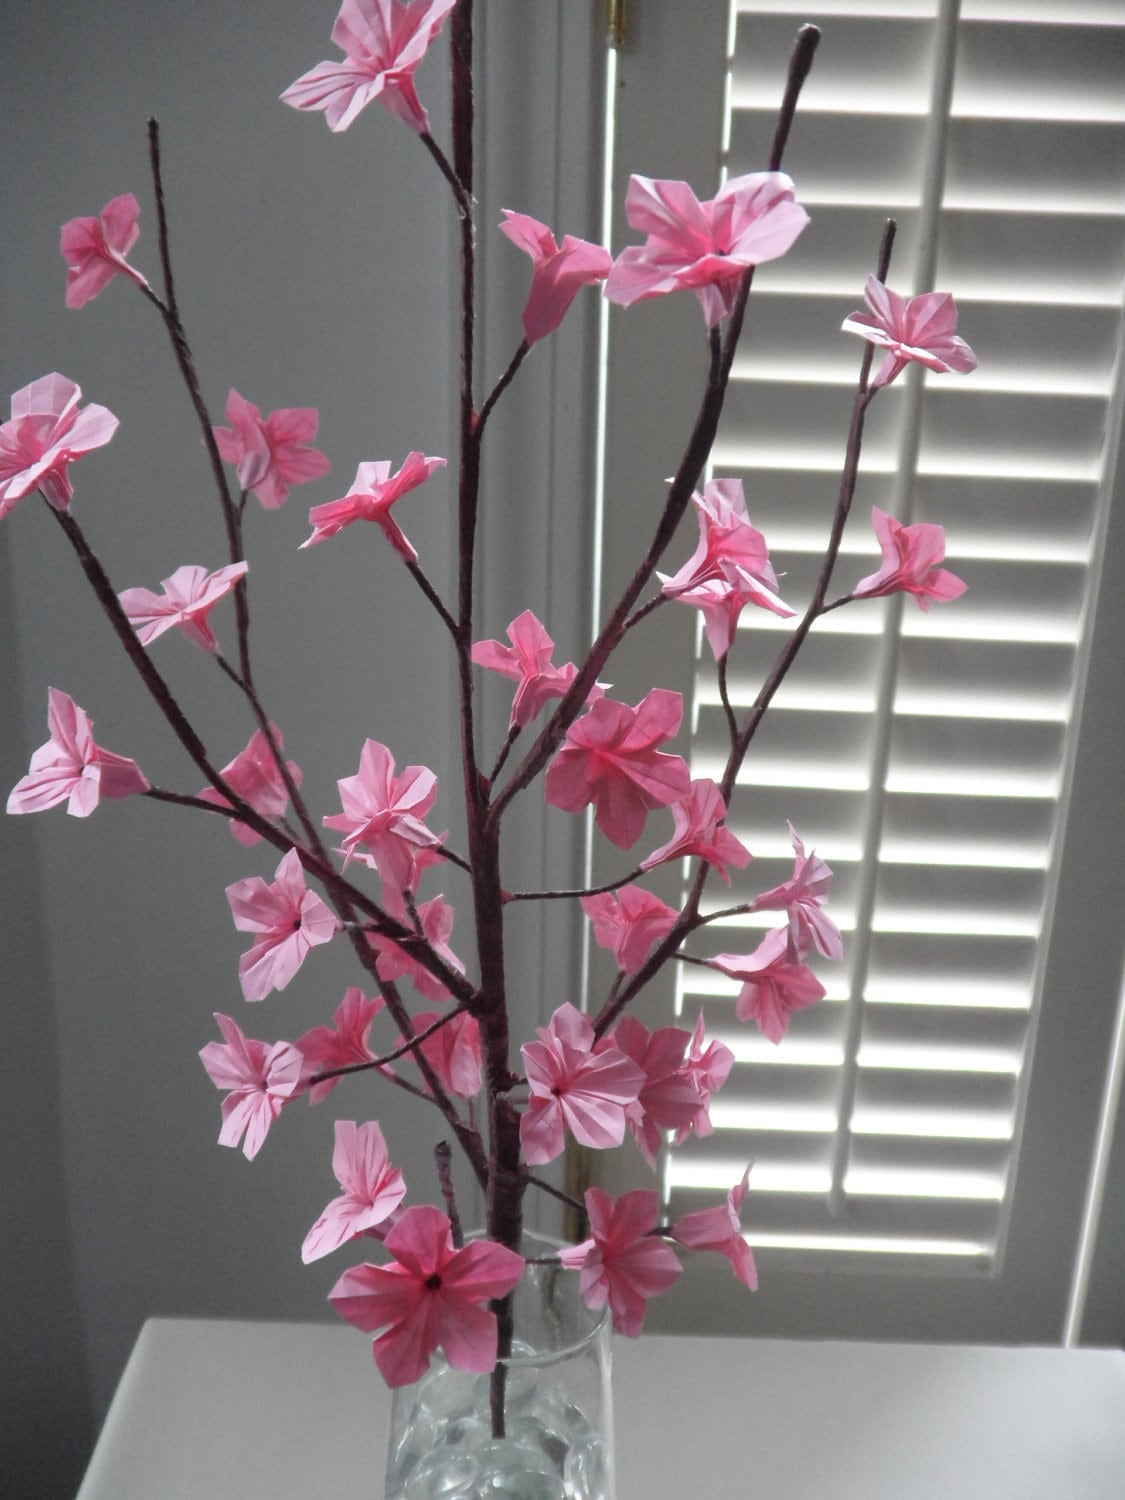 Origami Paper Cherry Blossoms Pink by DearBetsy on Etsy - photo#25